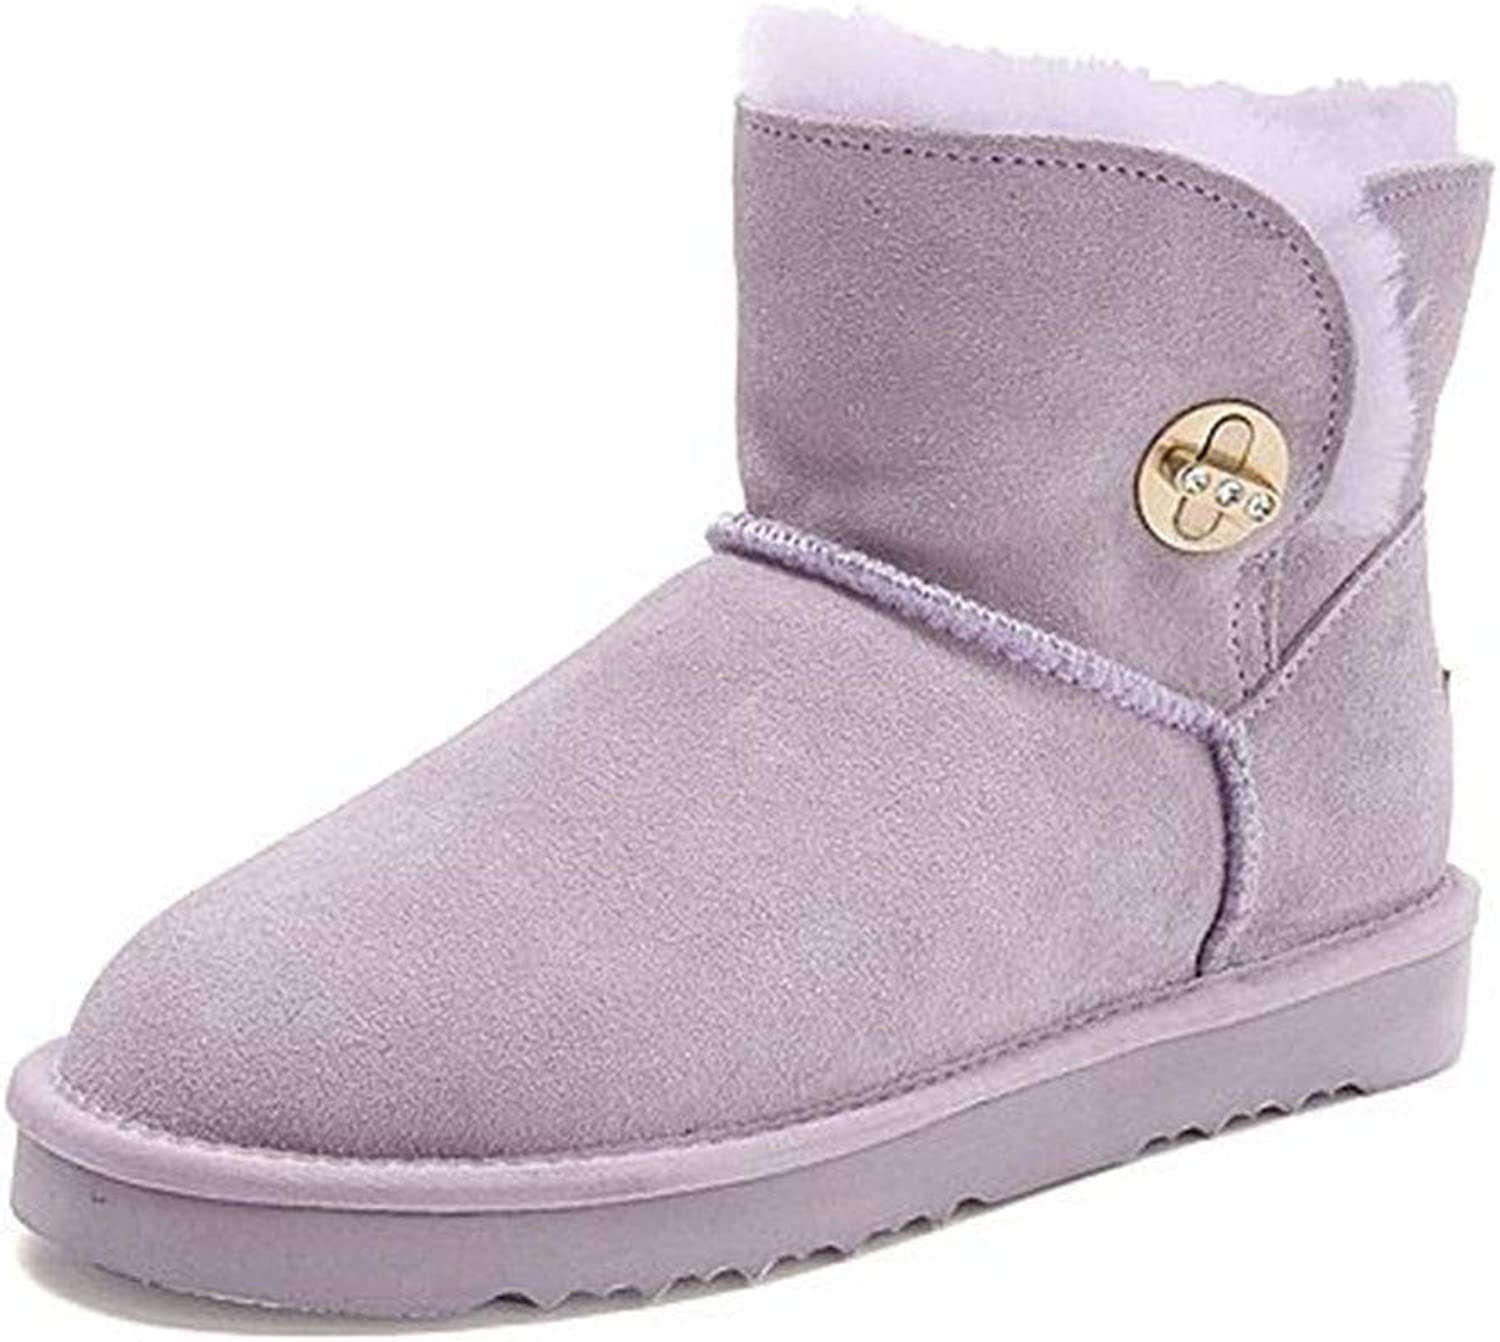 Booties shoes Autumn Winter Women's Snow Boots Outdoor Hiking shoes Casual shoes Waterproof snow boots Non-Slip shoes shoes (color   Purple, Size   38)